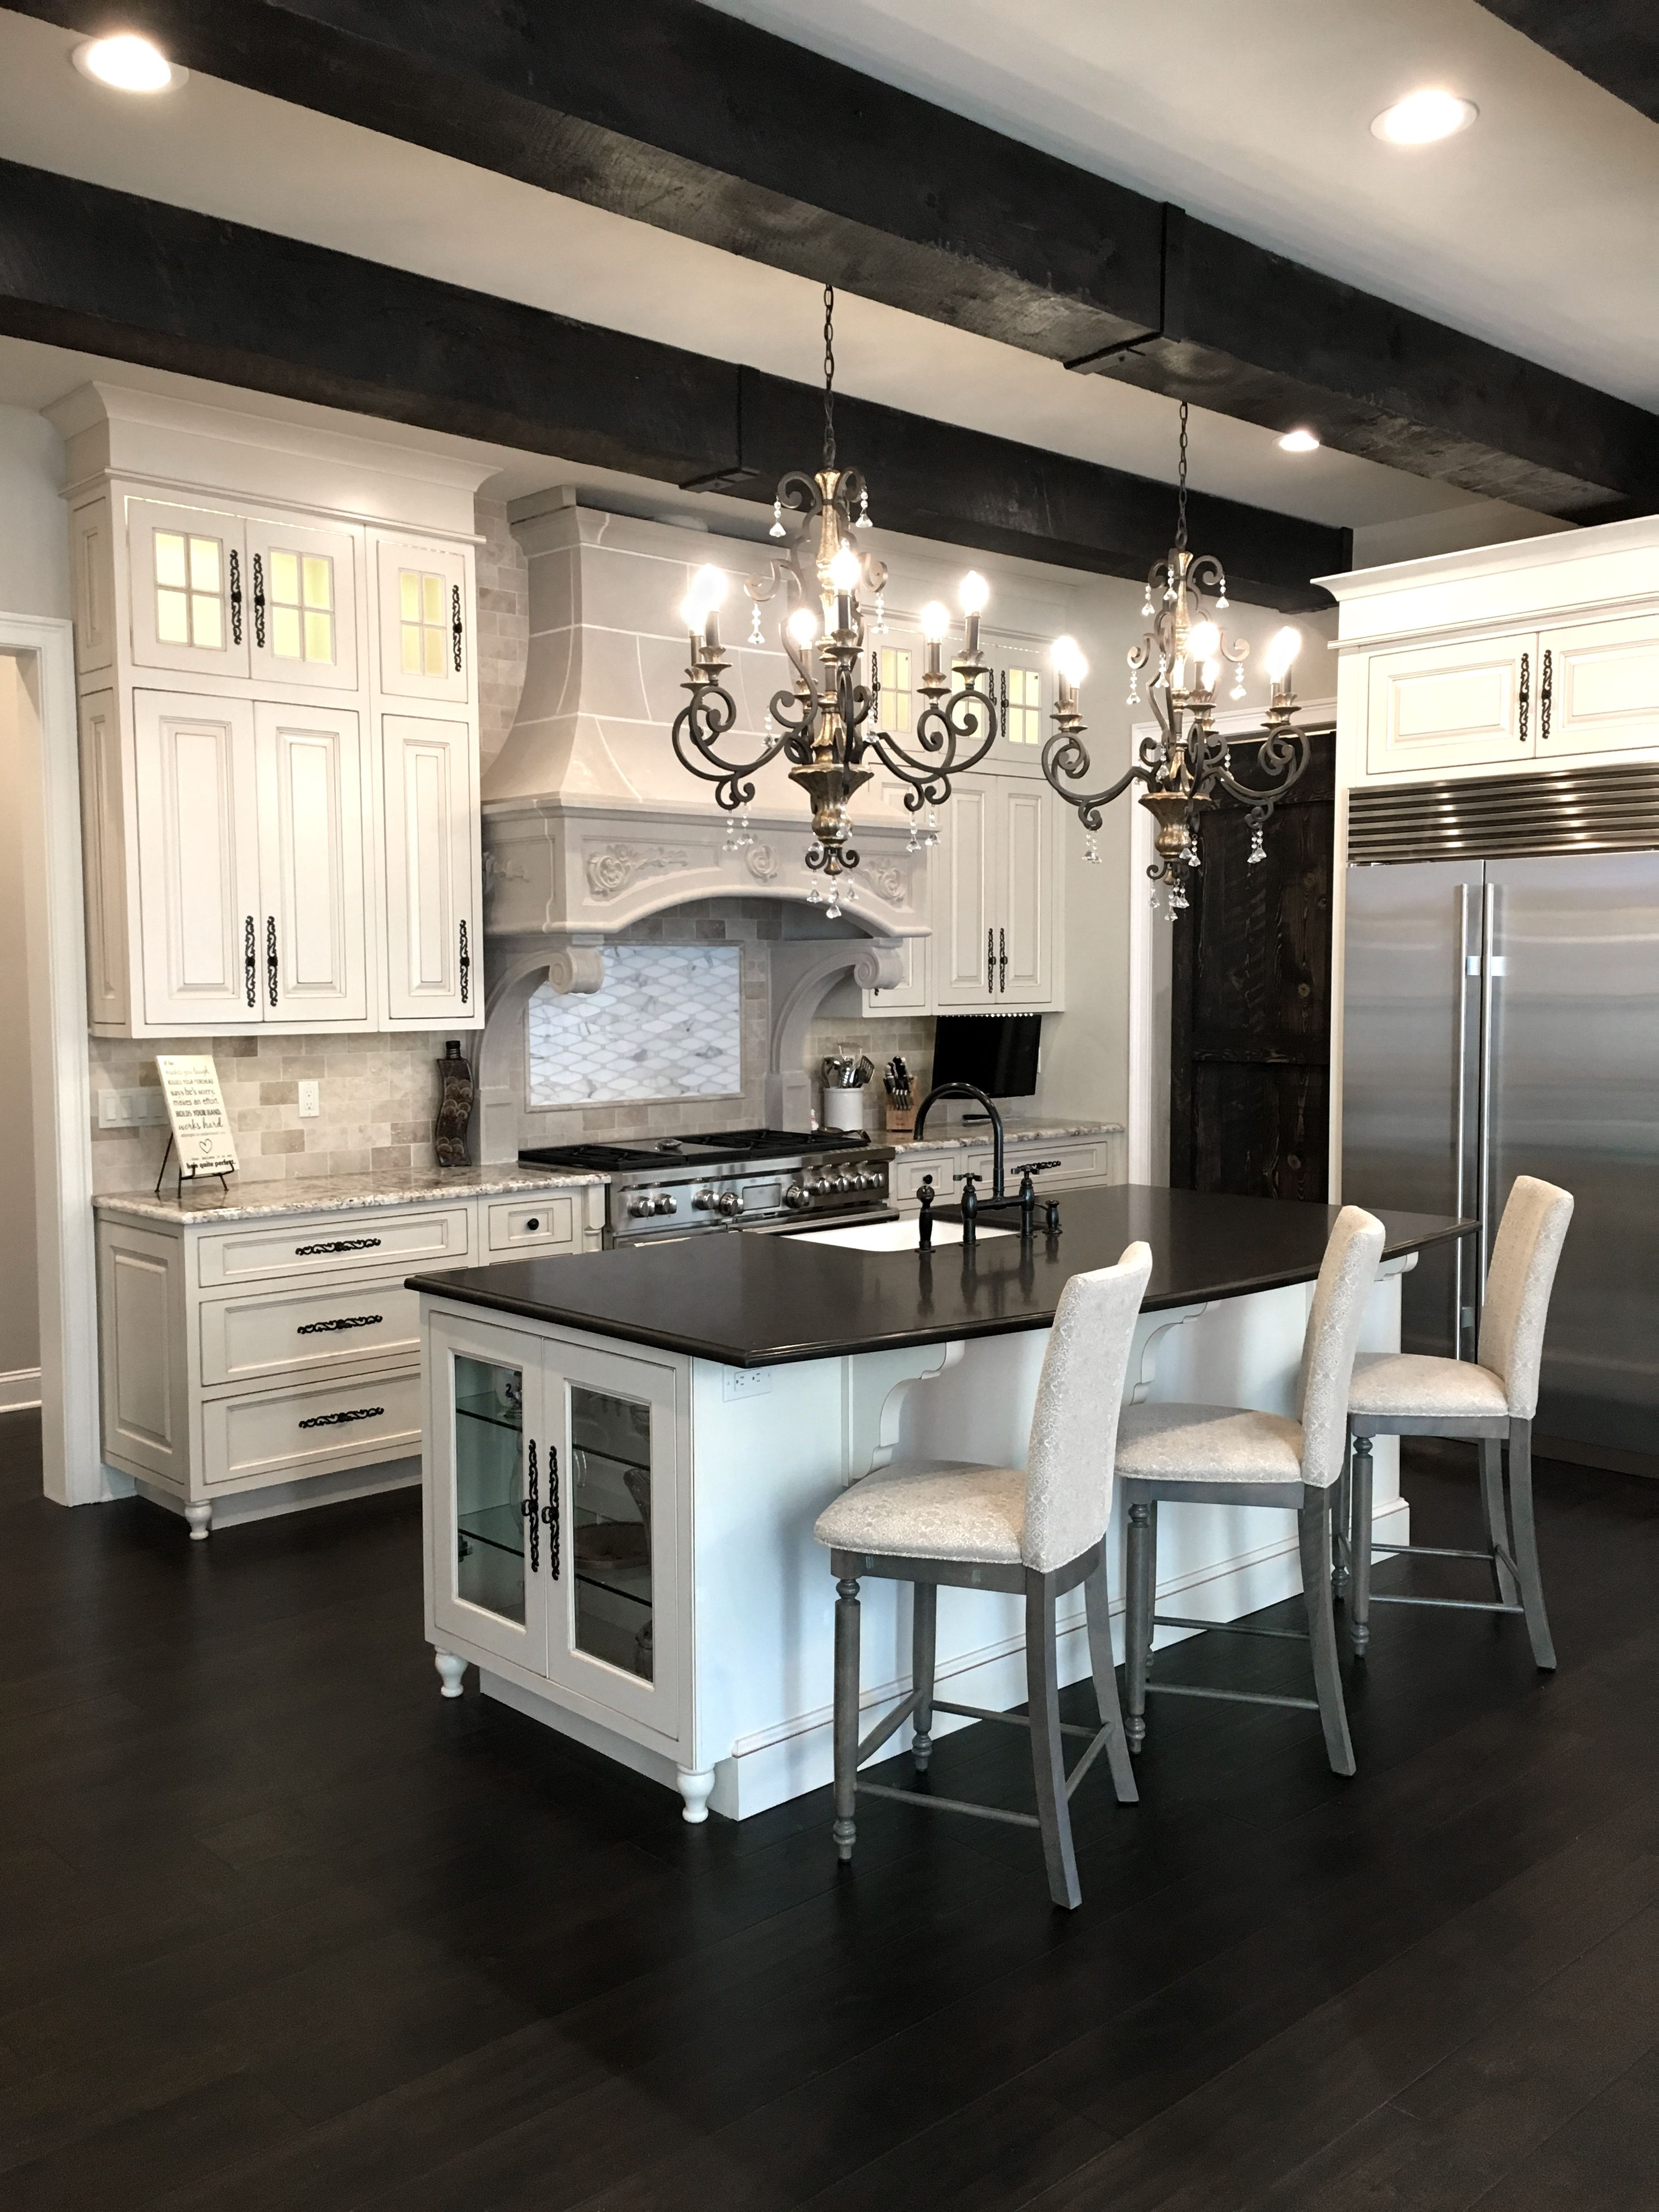 French Country Kitchen, Wood Beam Ceiling, Kitchen Island